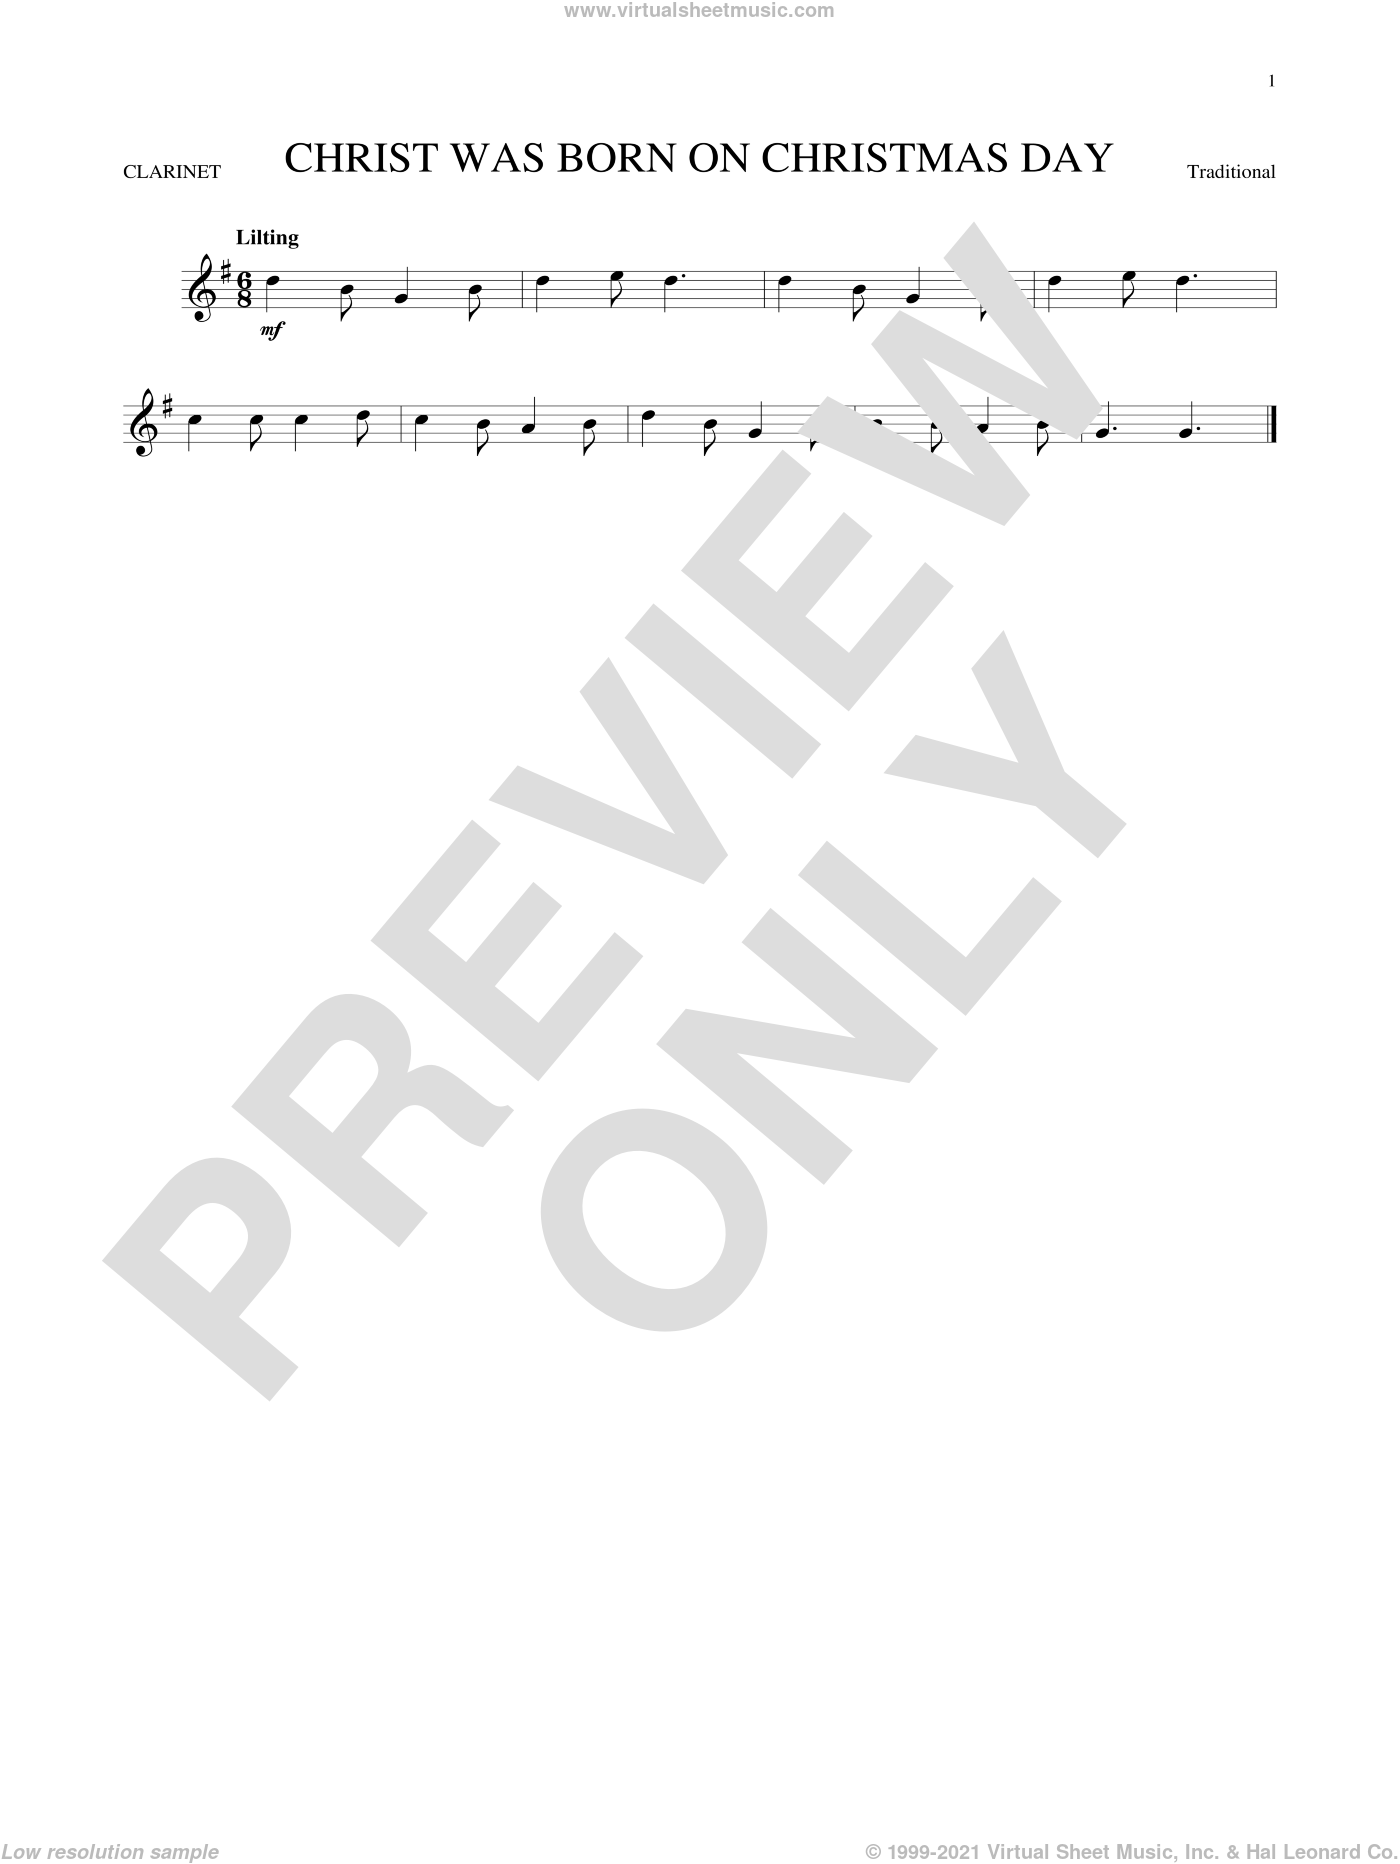 Christ Was Born On Christmas Day sheet music for clarinet solo, intermediate skill level